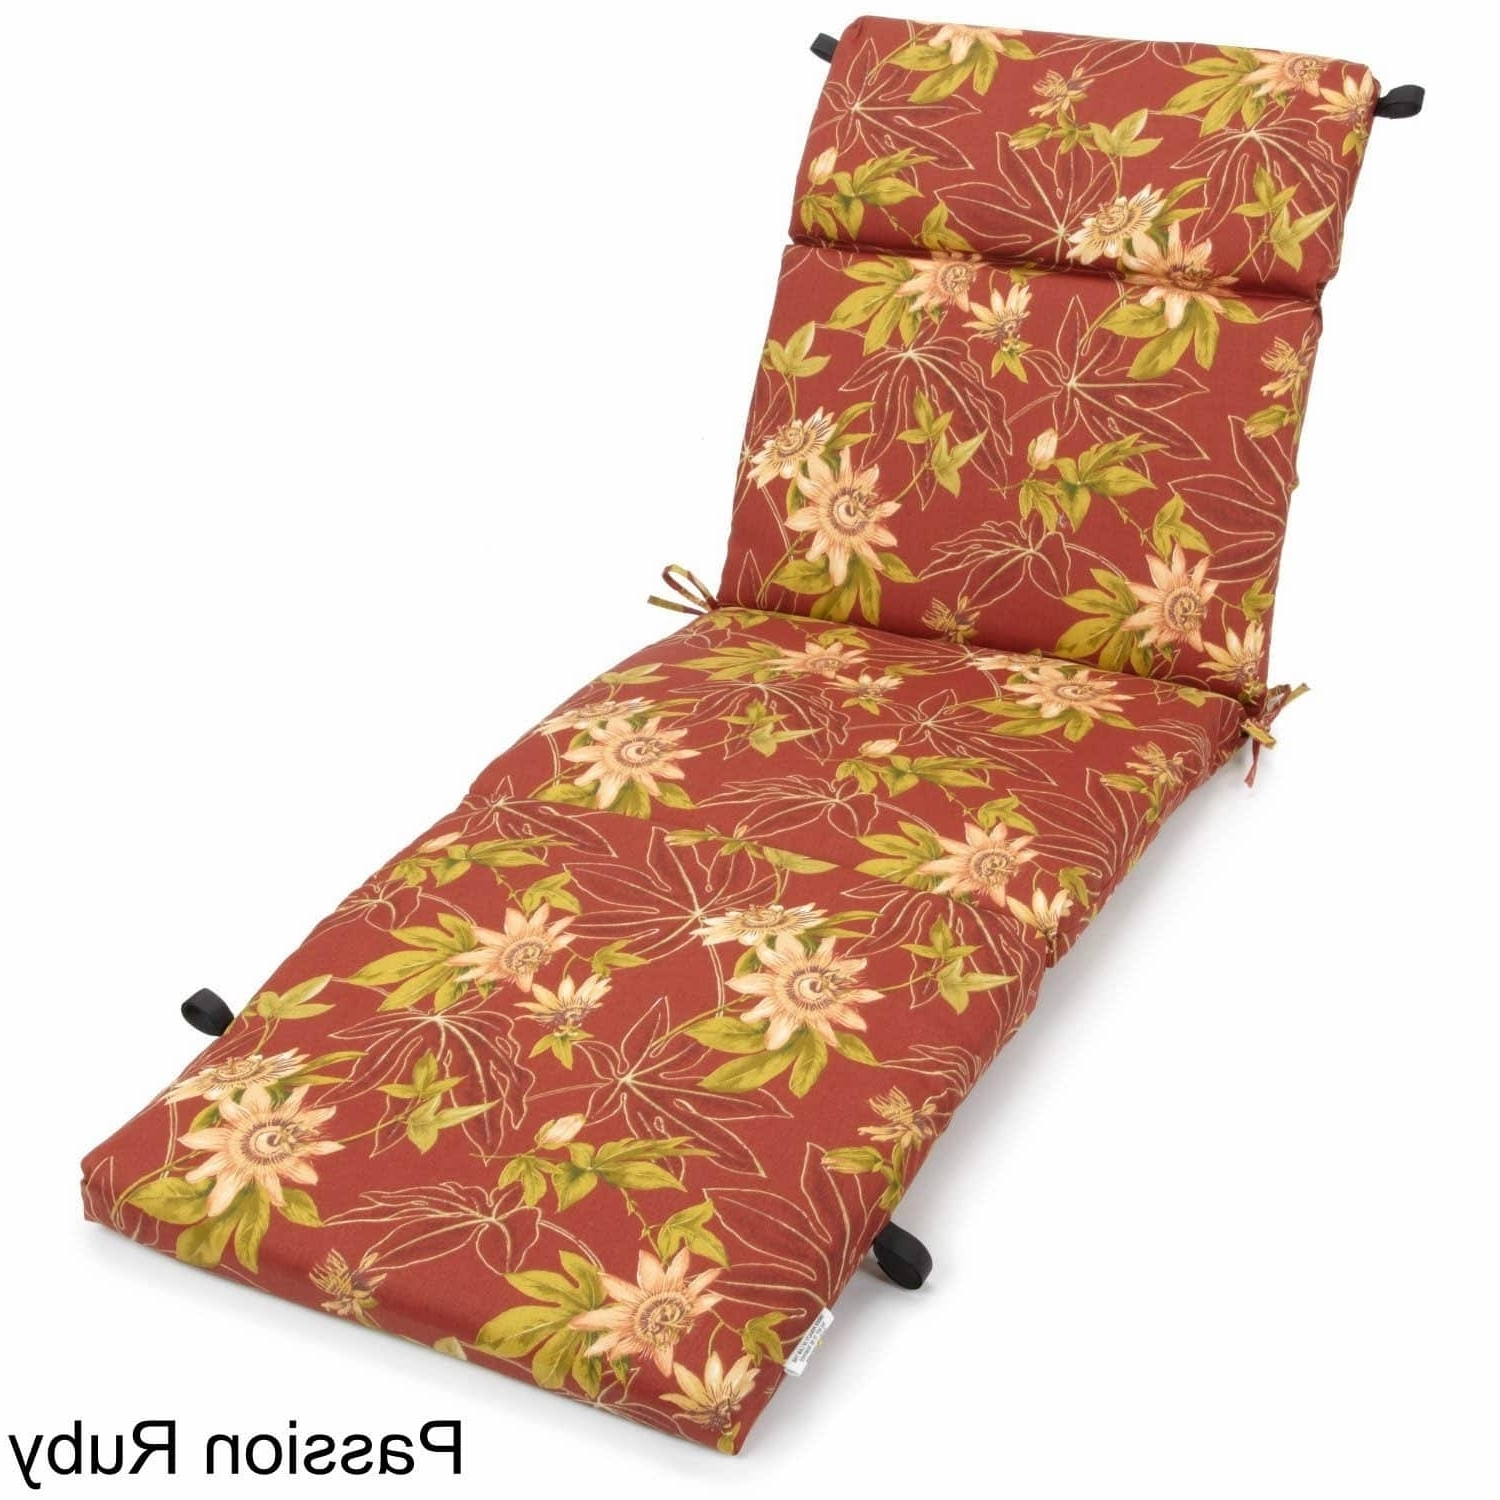 Widely Used Chaise Lounge Chair Outdoor Cushions With Outdoor Chaise Lounge Cushion – Free Shipping Today – Overstock (View 12 of 15)